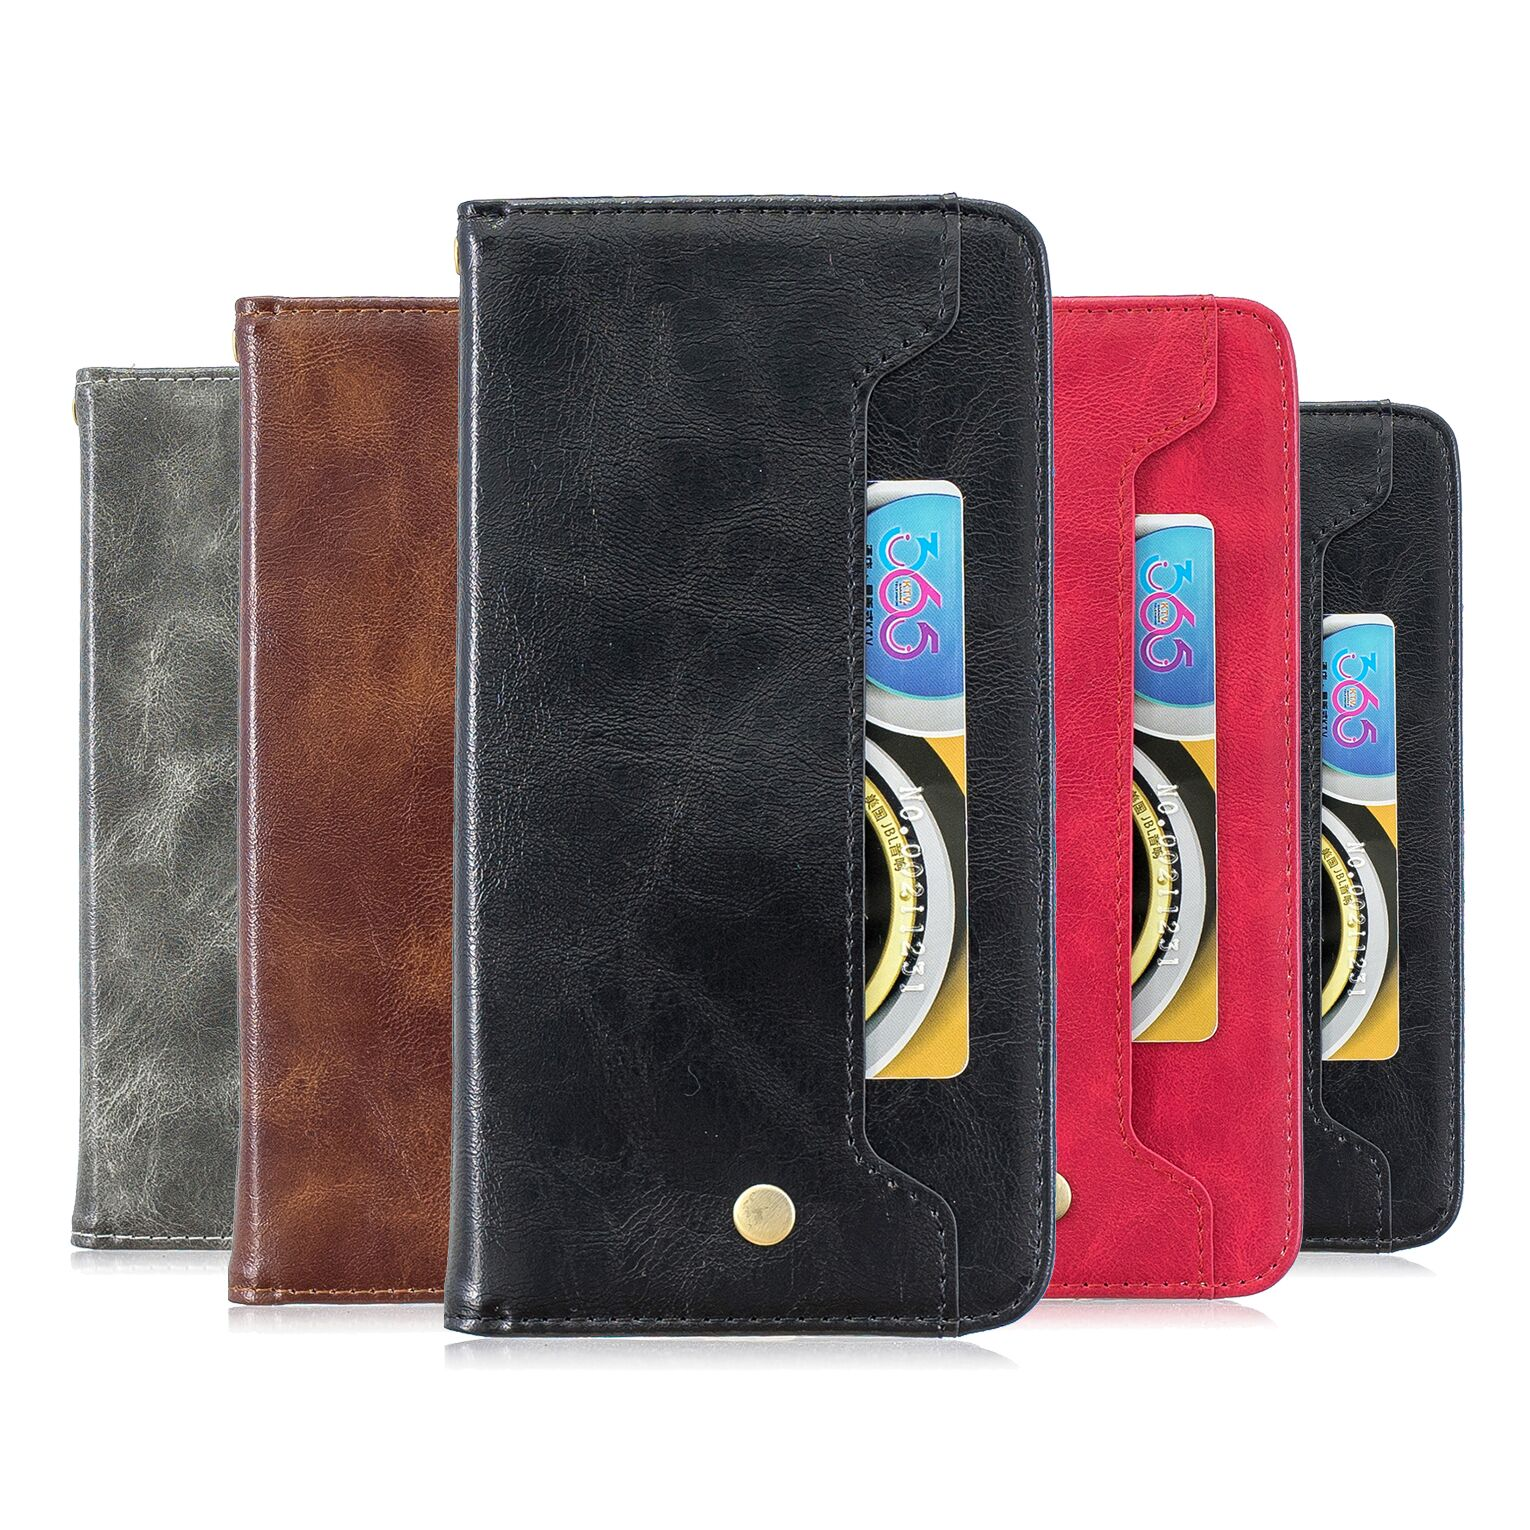 Leather Book Flip Phone Wallet Case Cover For <font><b>Nokia</b></font> 5 Nokia5 Luxury Phone Case Coque For <font><b>Nokia</b></font> 5 Nokia5 TA <font><b>1053</b></font> TA-<font><b>1053</b></font> Fundas image